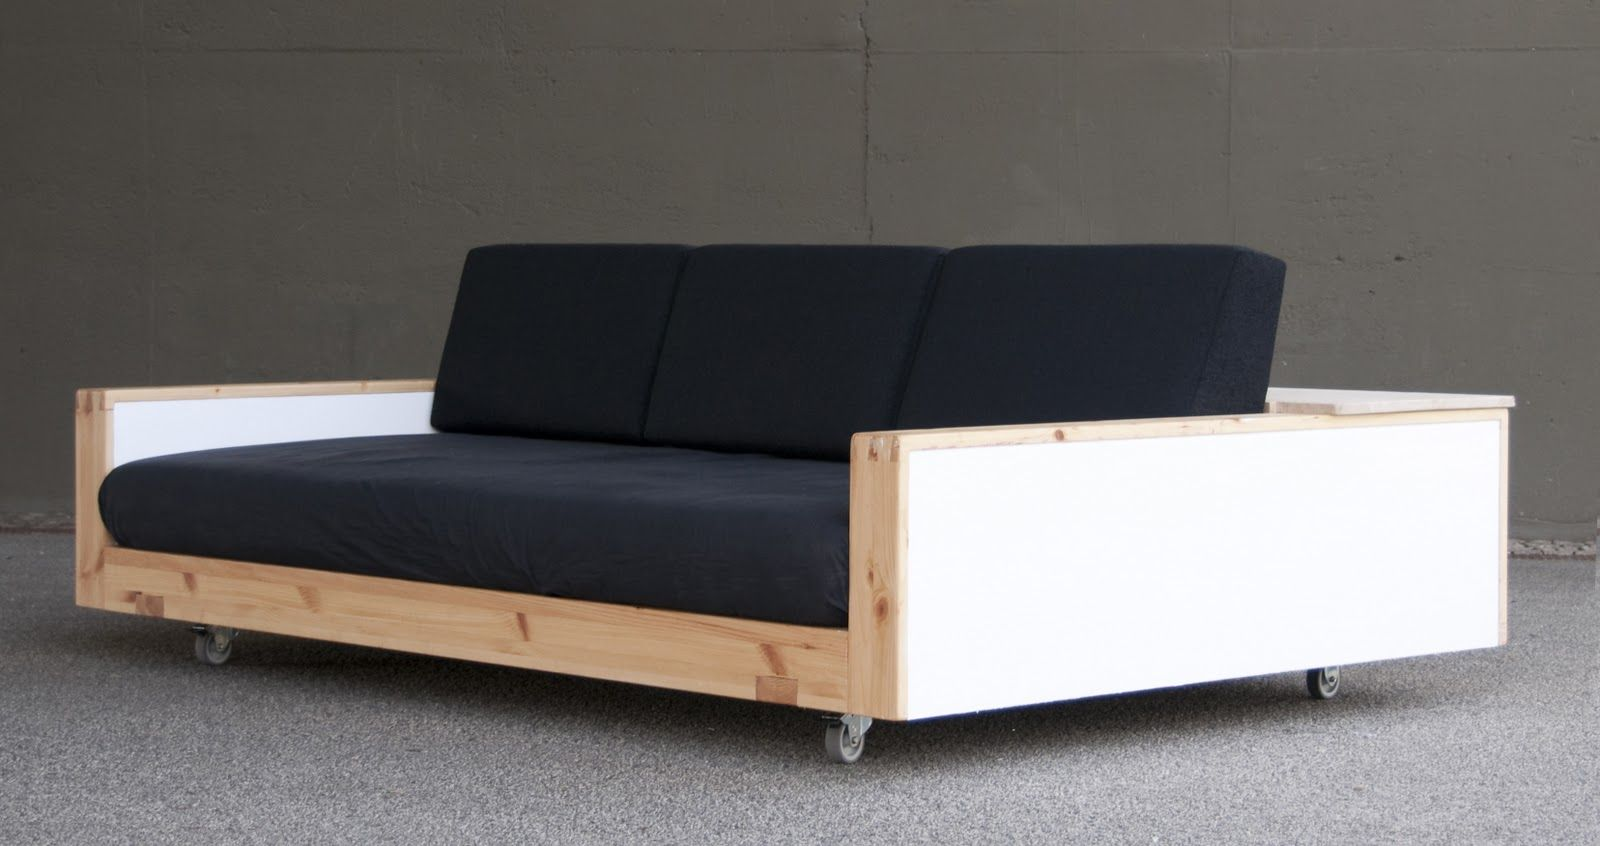 Schön Upcycled Wood Creative Sofa D. Designed By Van Bo Le Mentzel